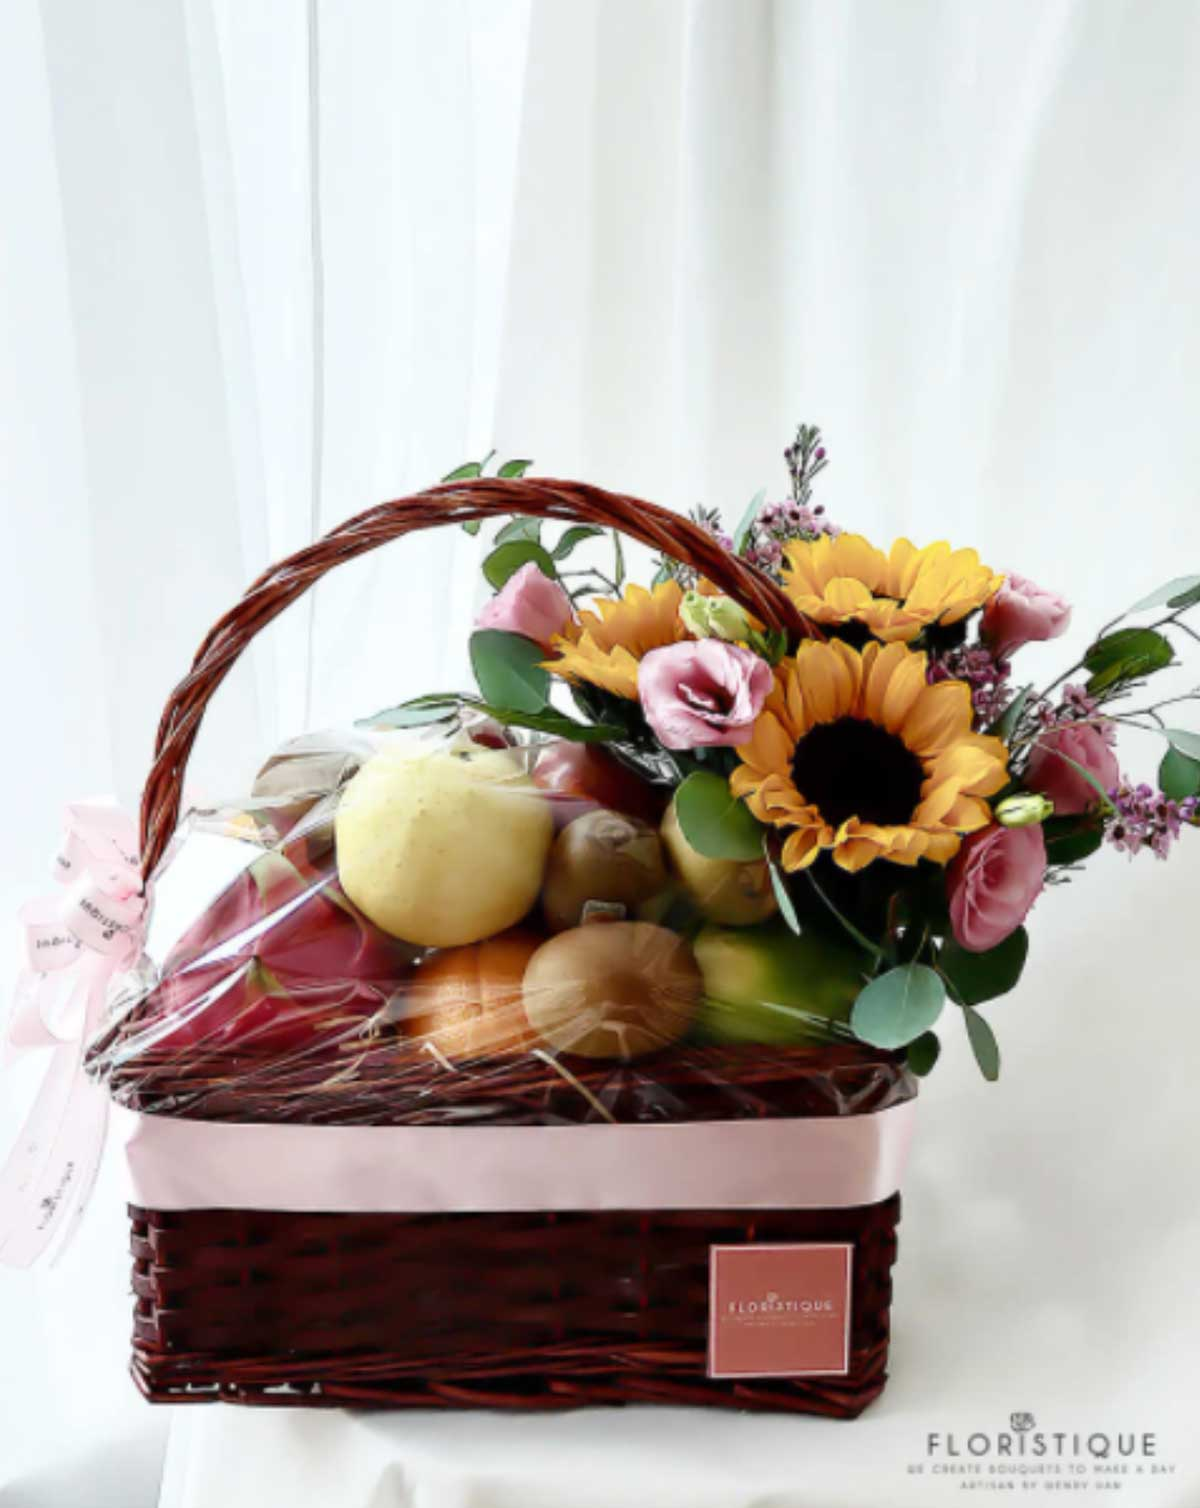 hamper within a short period of time